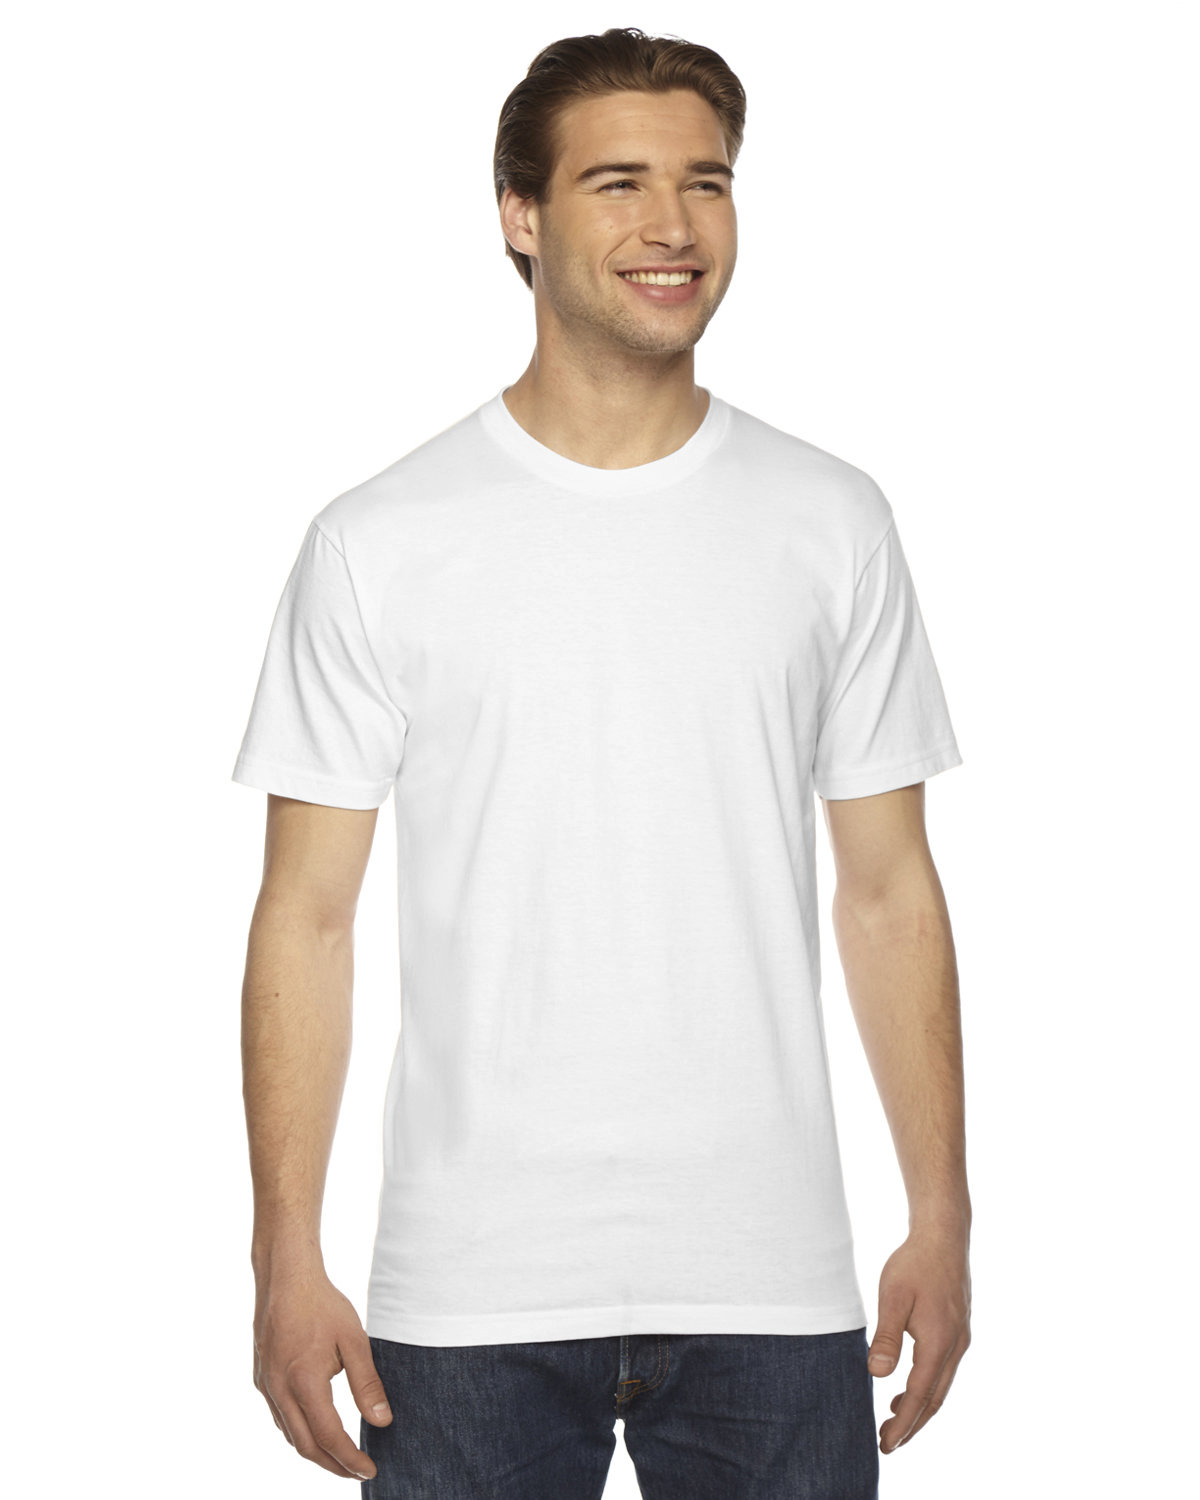 American Apparel Unisex Fine Jersey USA Made T-Shirt WHITE